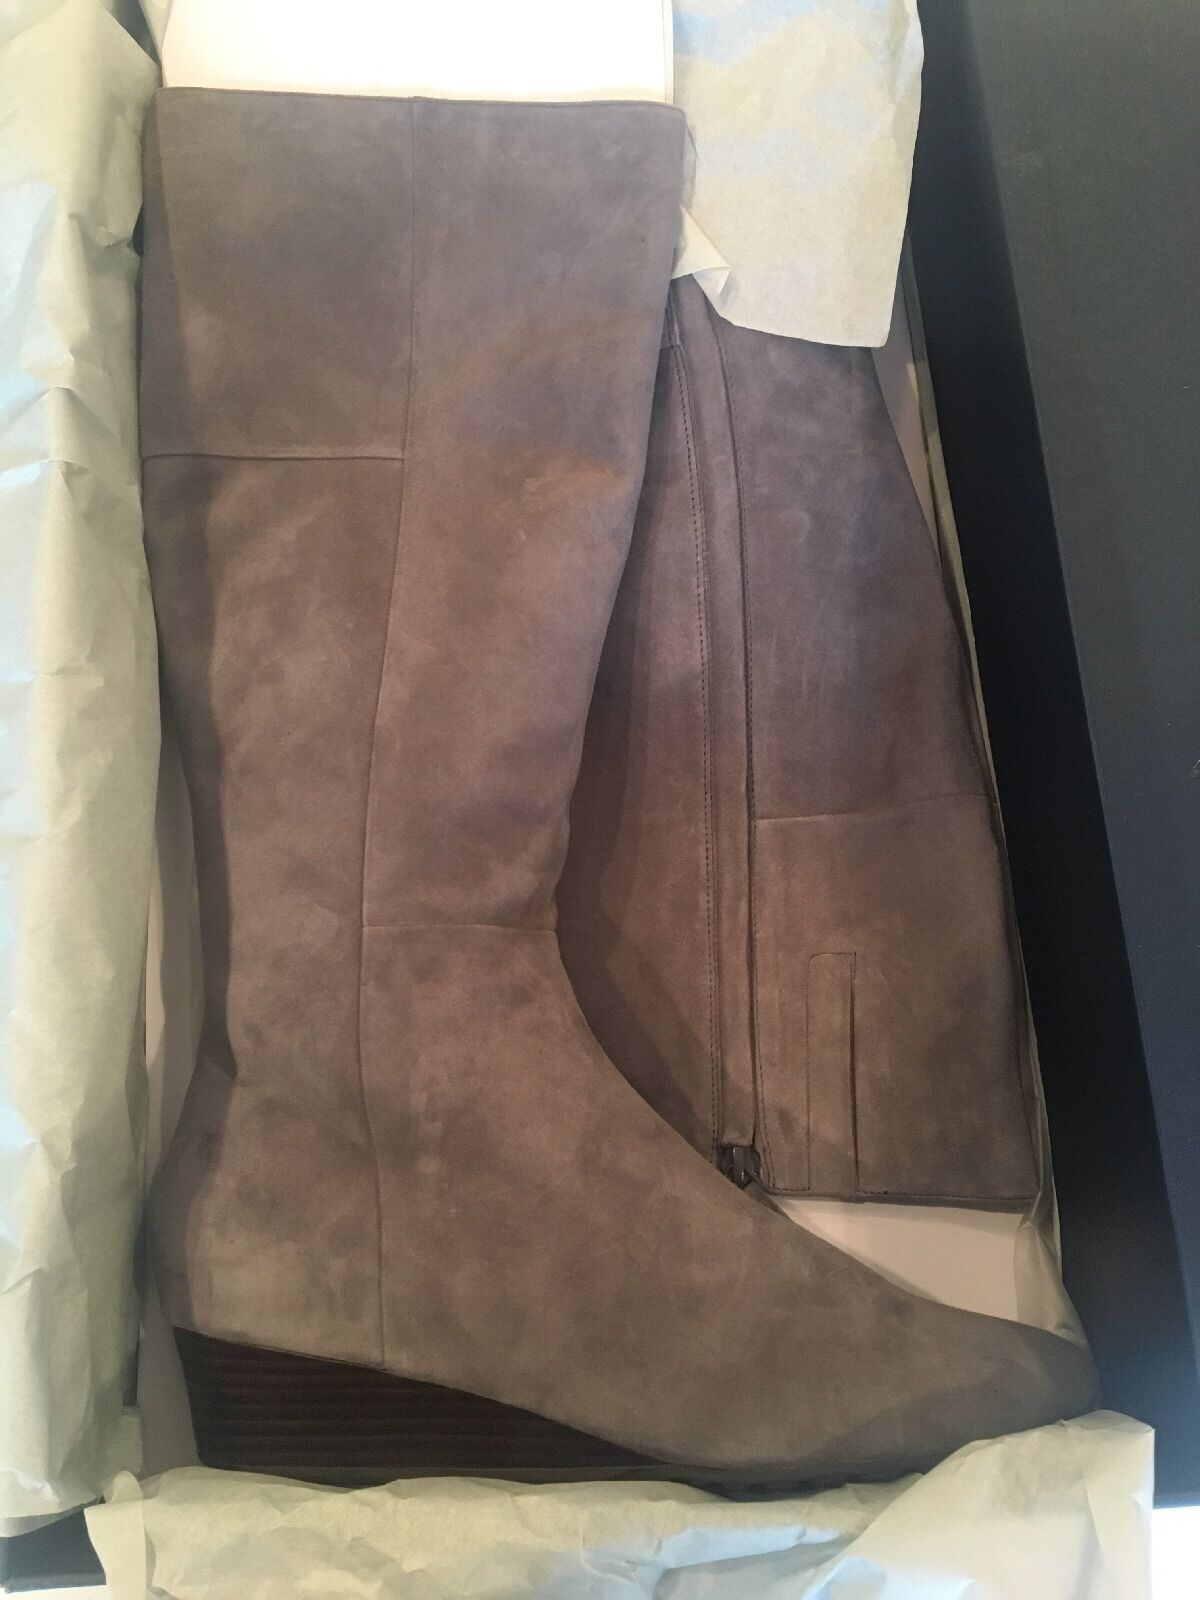 Cole Haan Tali Luxe Wedge Boots, STORMCLOUD, Size 8, New